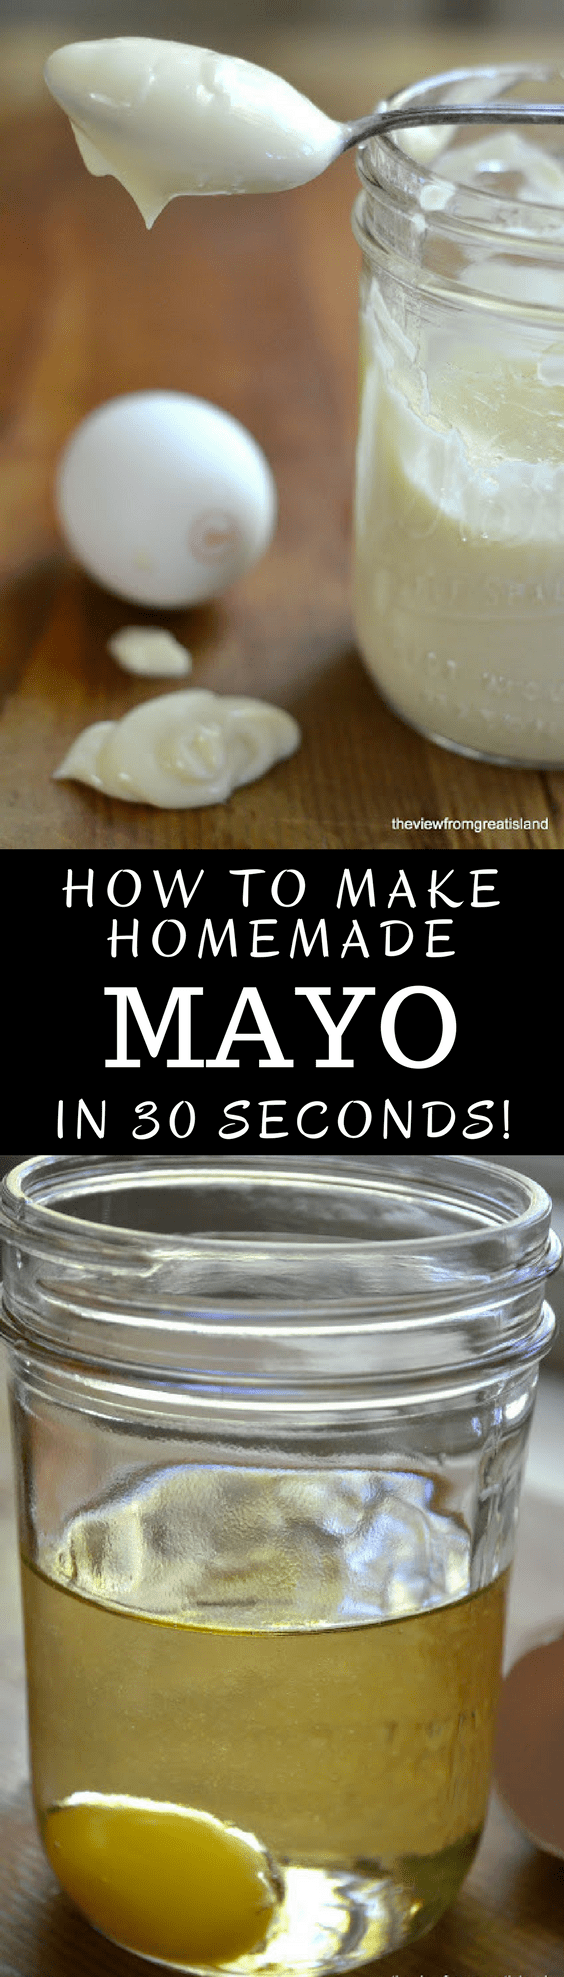 30-Second Mayonnaise is the perfect storm of recipes. Just 2 ingredients, 30 seconds, and you have one of the great sauces in culinary history. #homemademayonnaise #recipe #howtomakemayonnaise #condiment